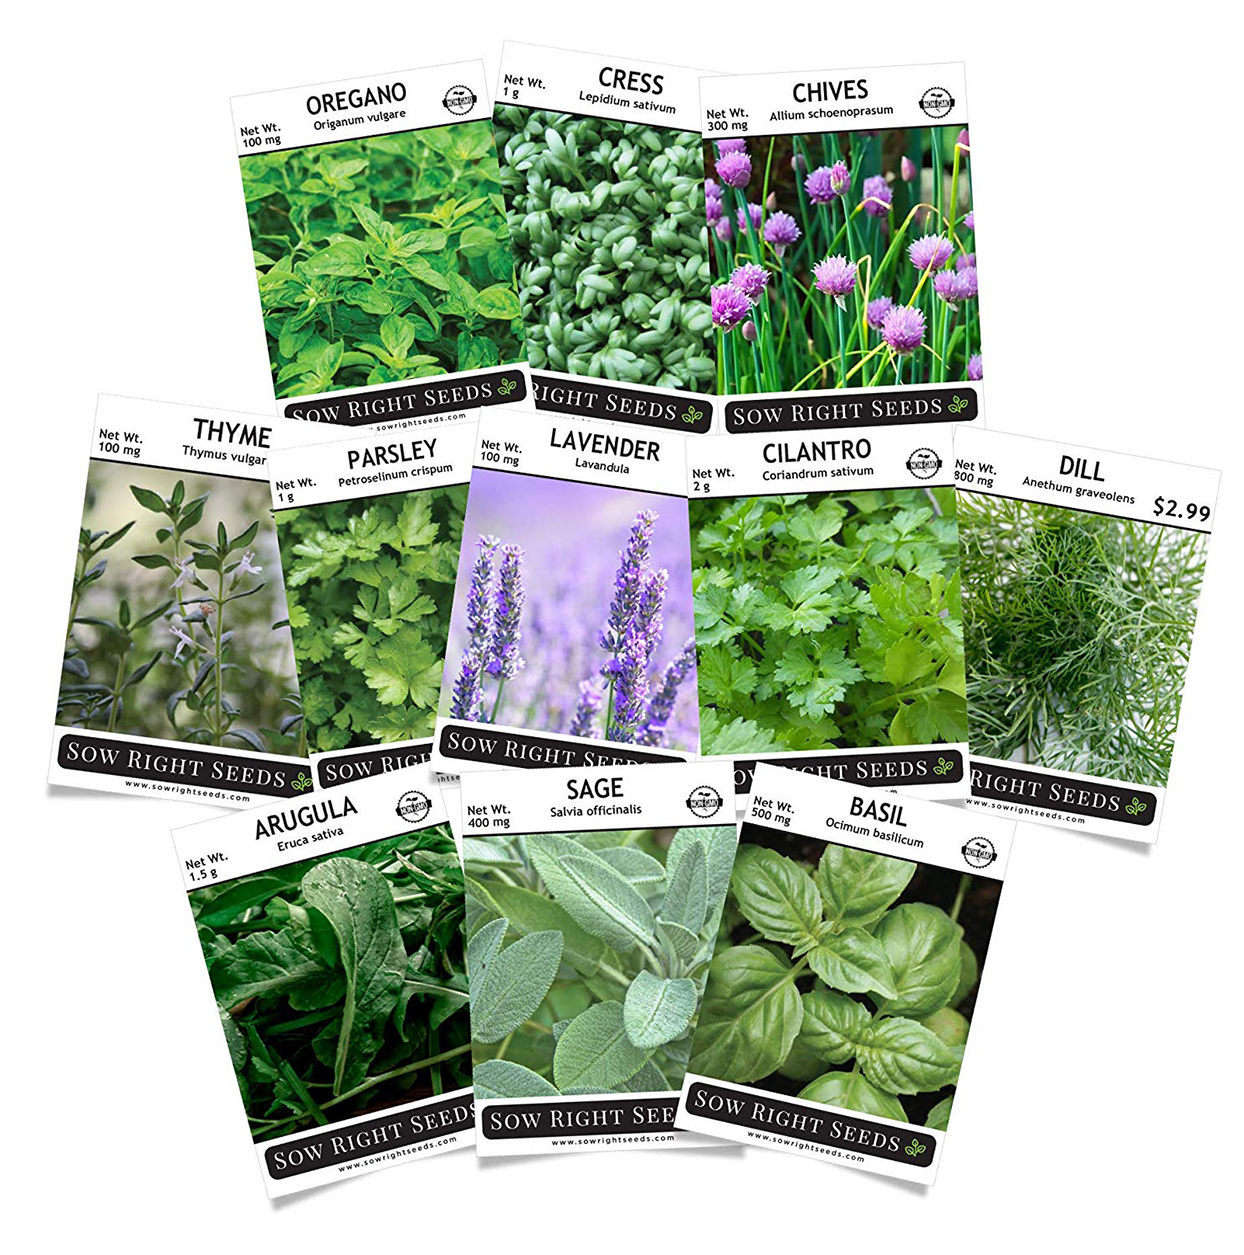 Eleven seed packets of herbs with photos of the herbs on the front of each packet